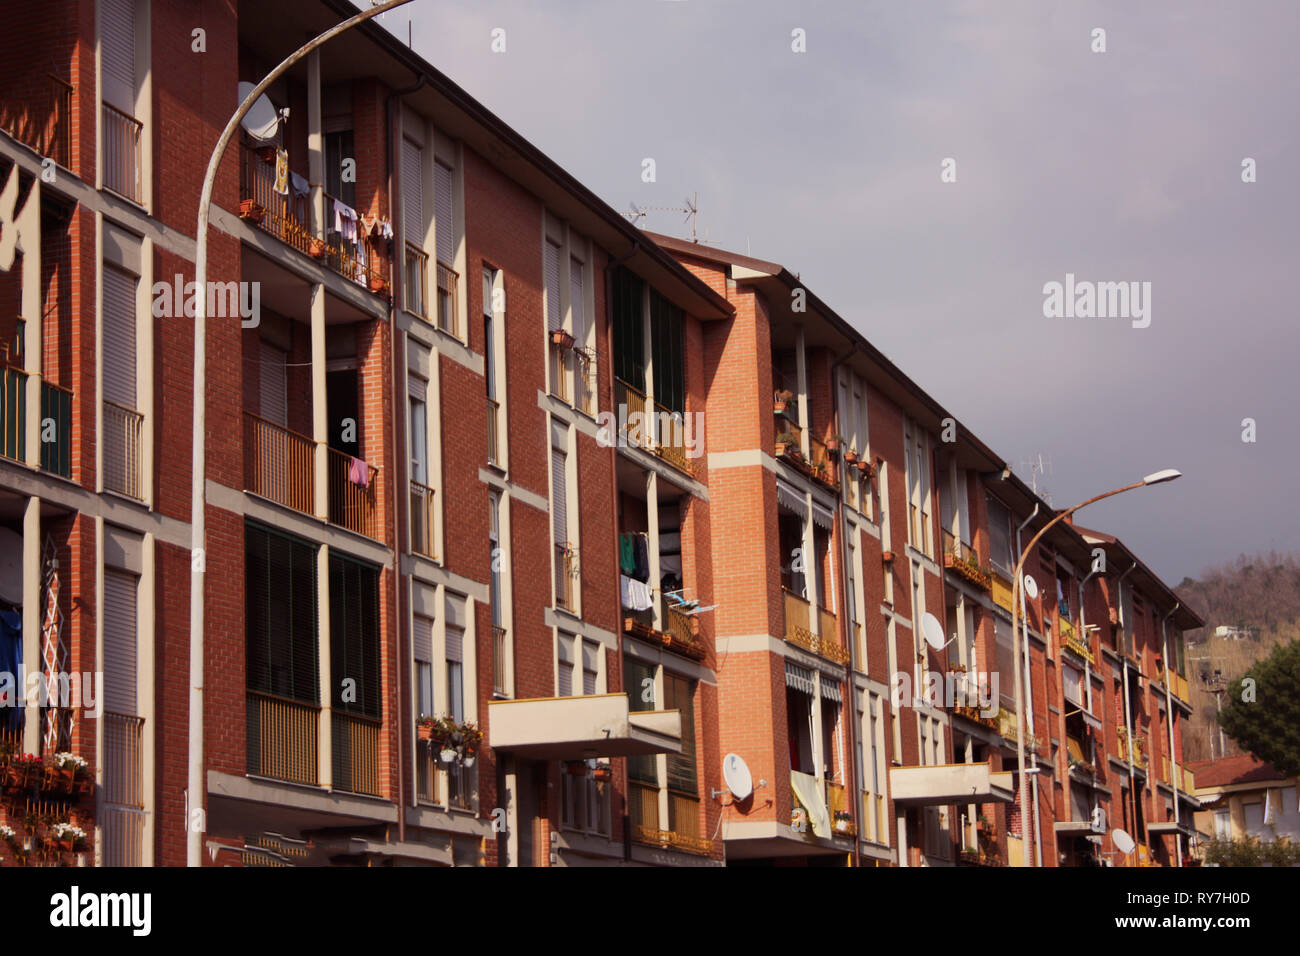 barracks and buildings of public houses built with a cold red brick - Stock Image